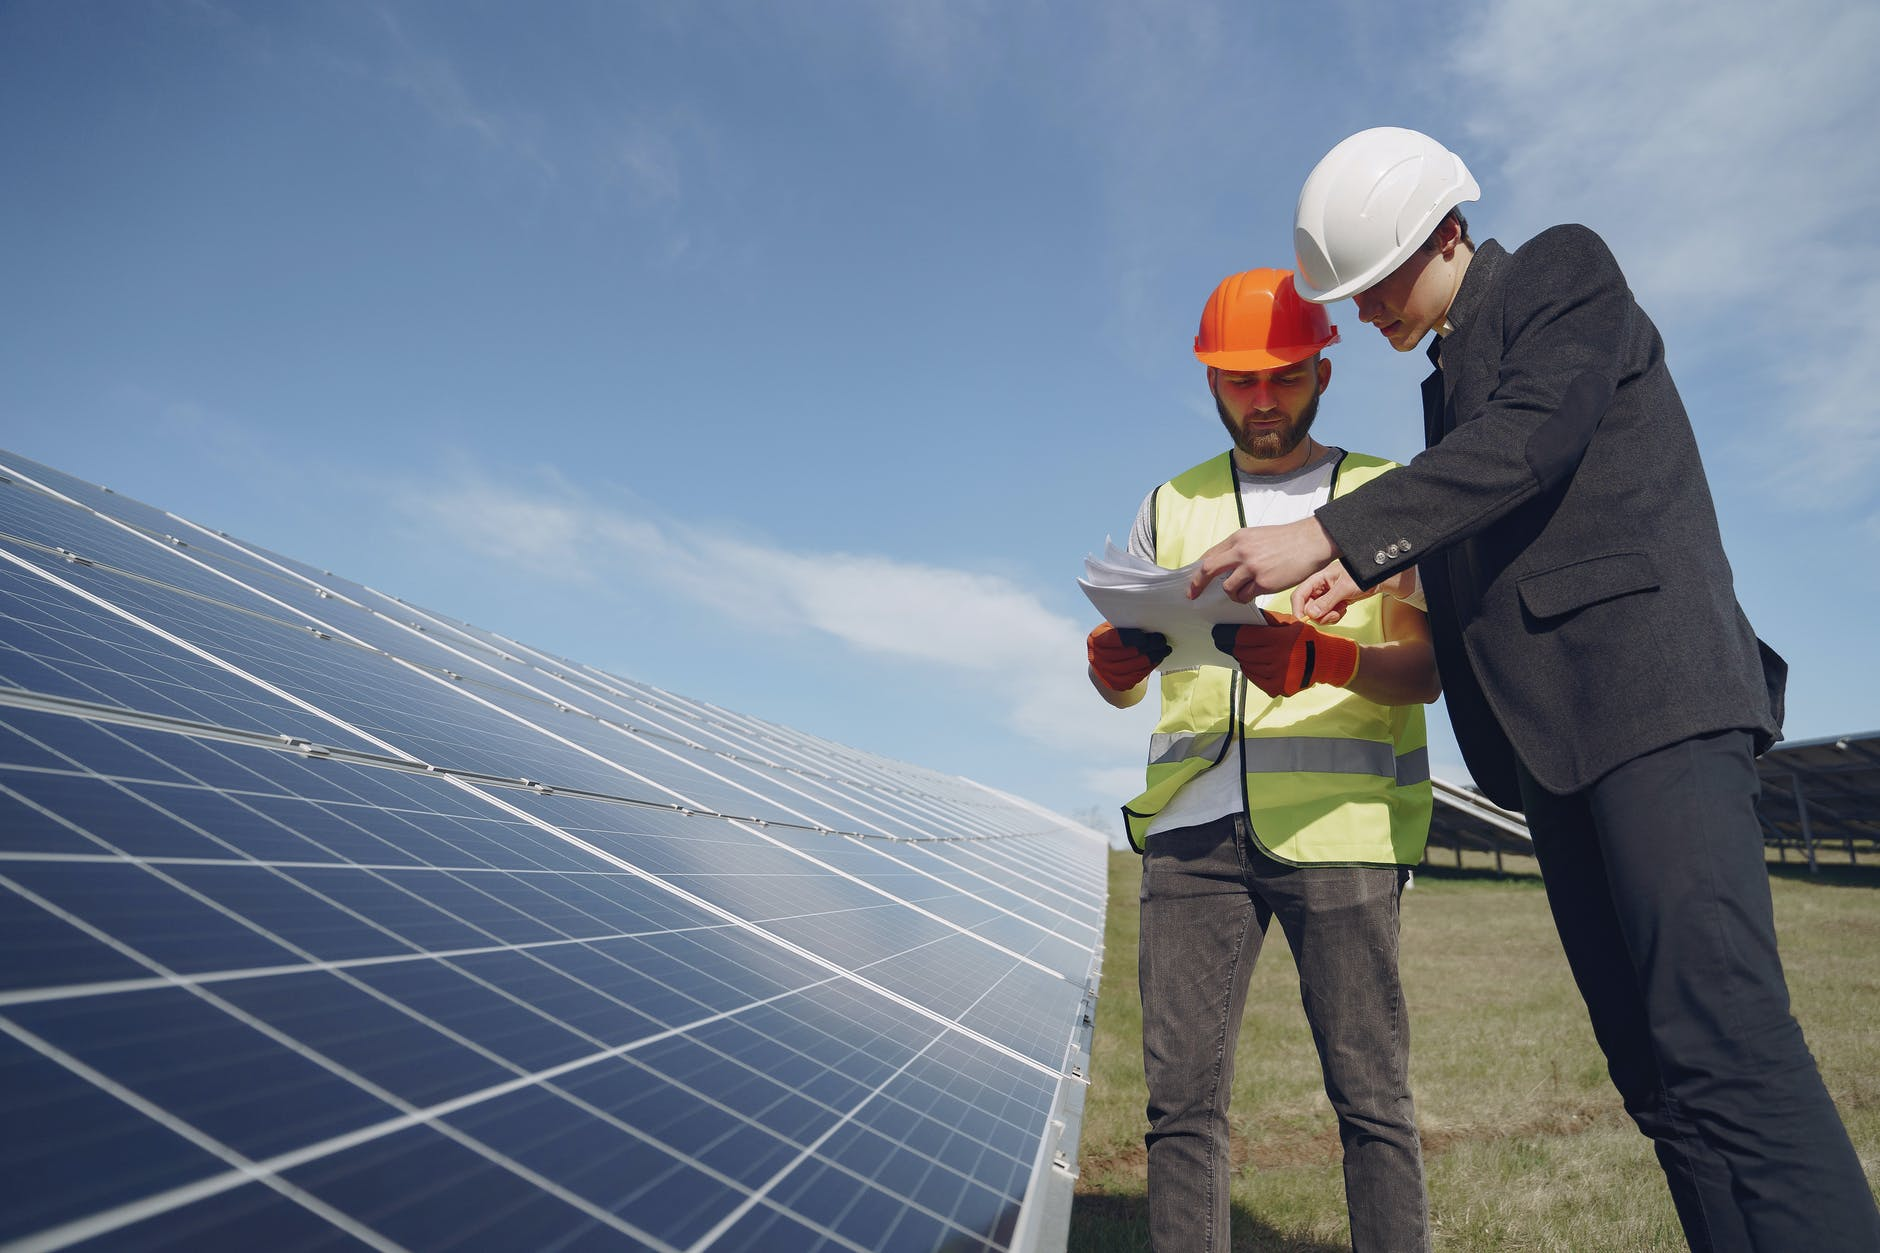 focused men with documents in hardhats at solar energy station